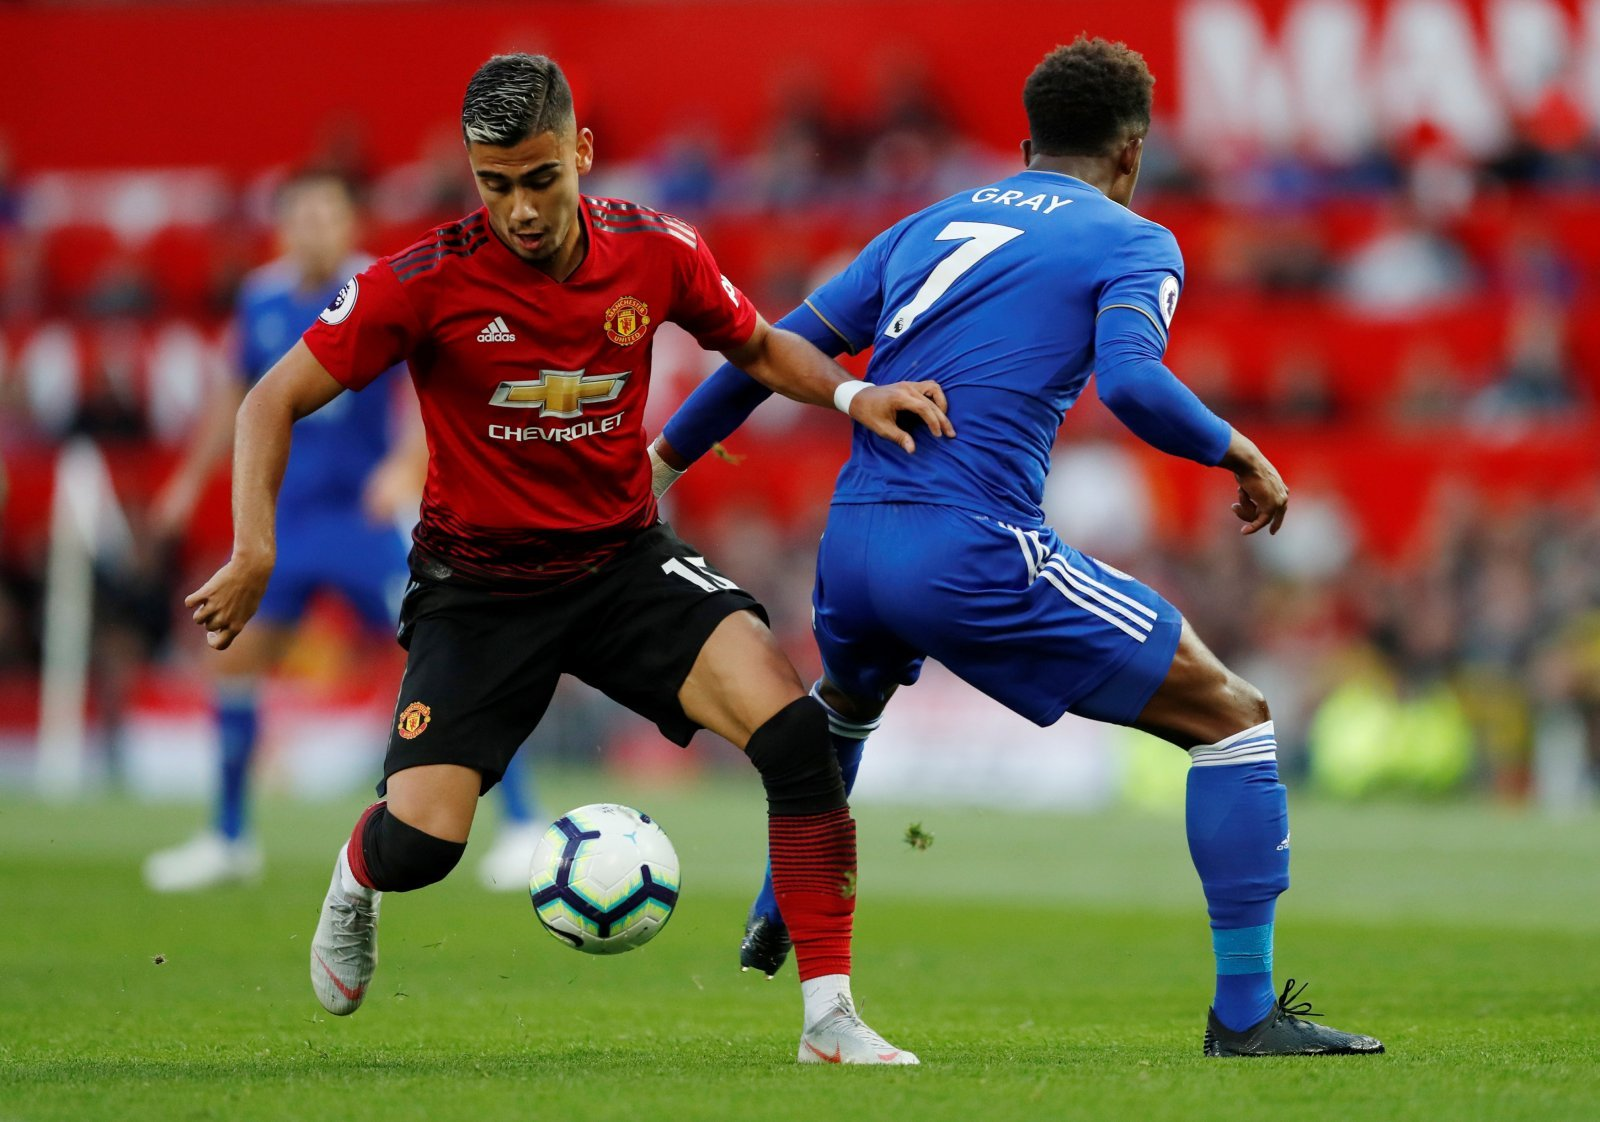 United fans on Twitter loved it as Mourinho give Pereira a start